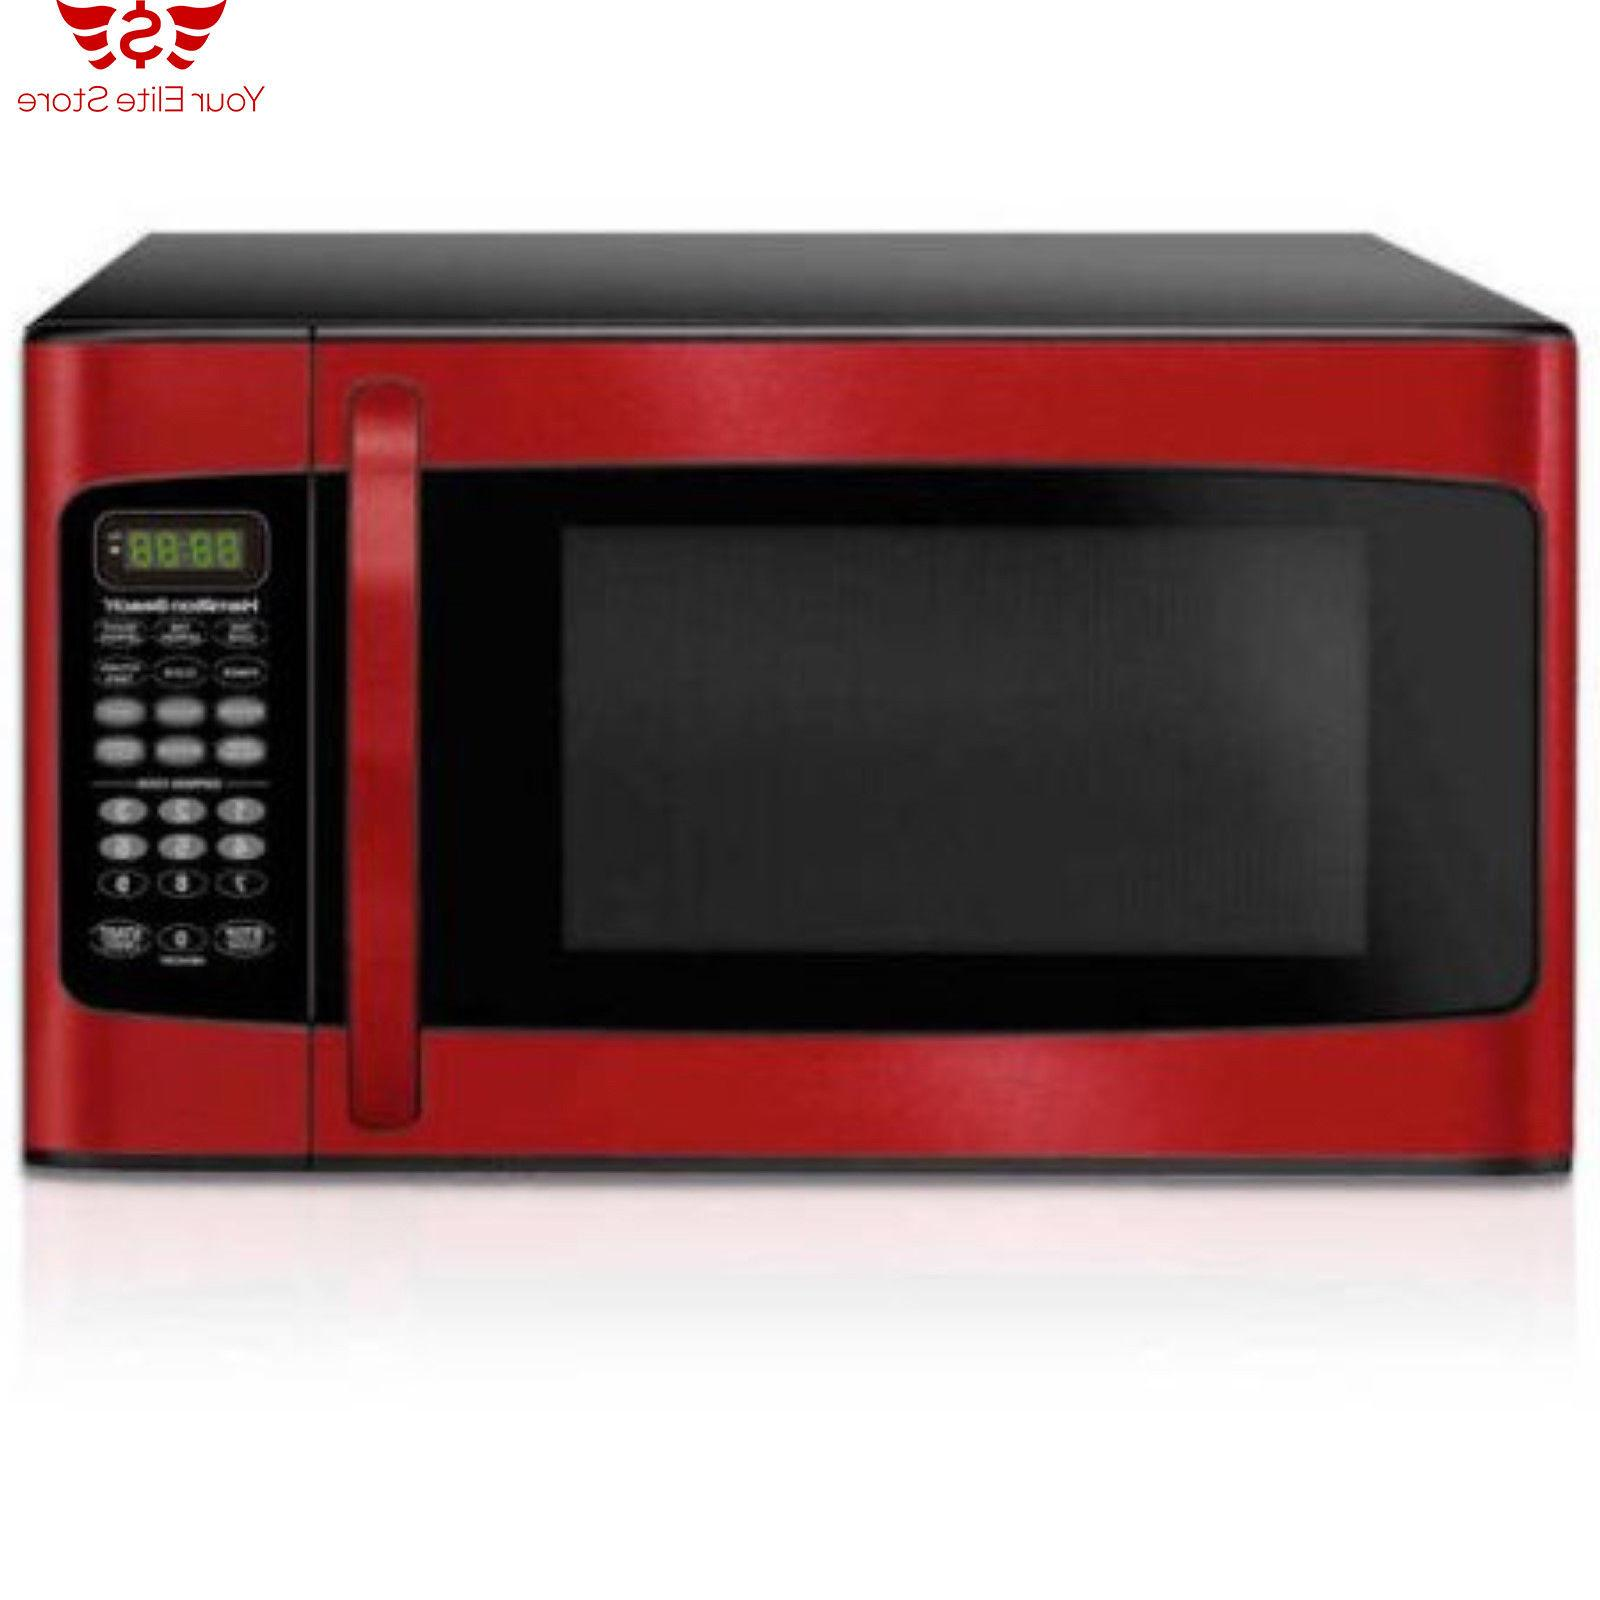 1 1 cu ft kitchen microwave oven